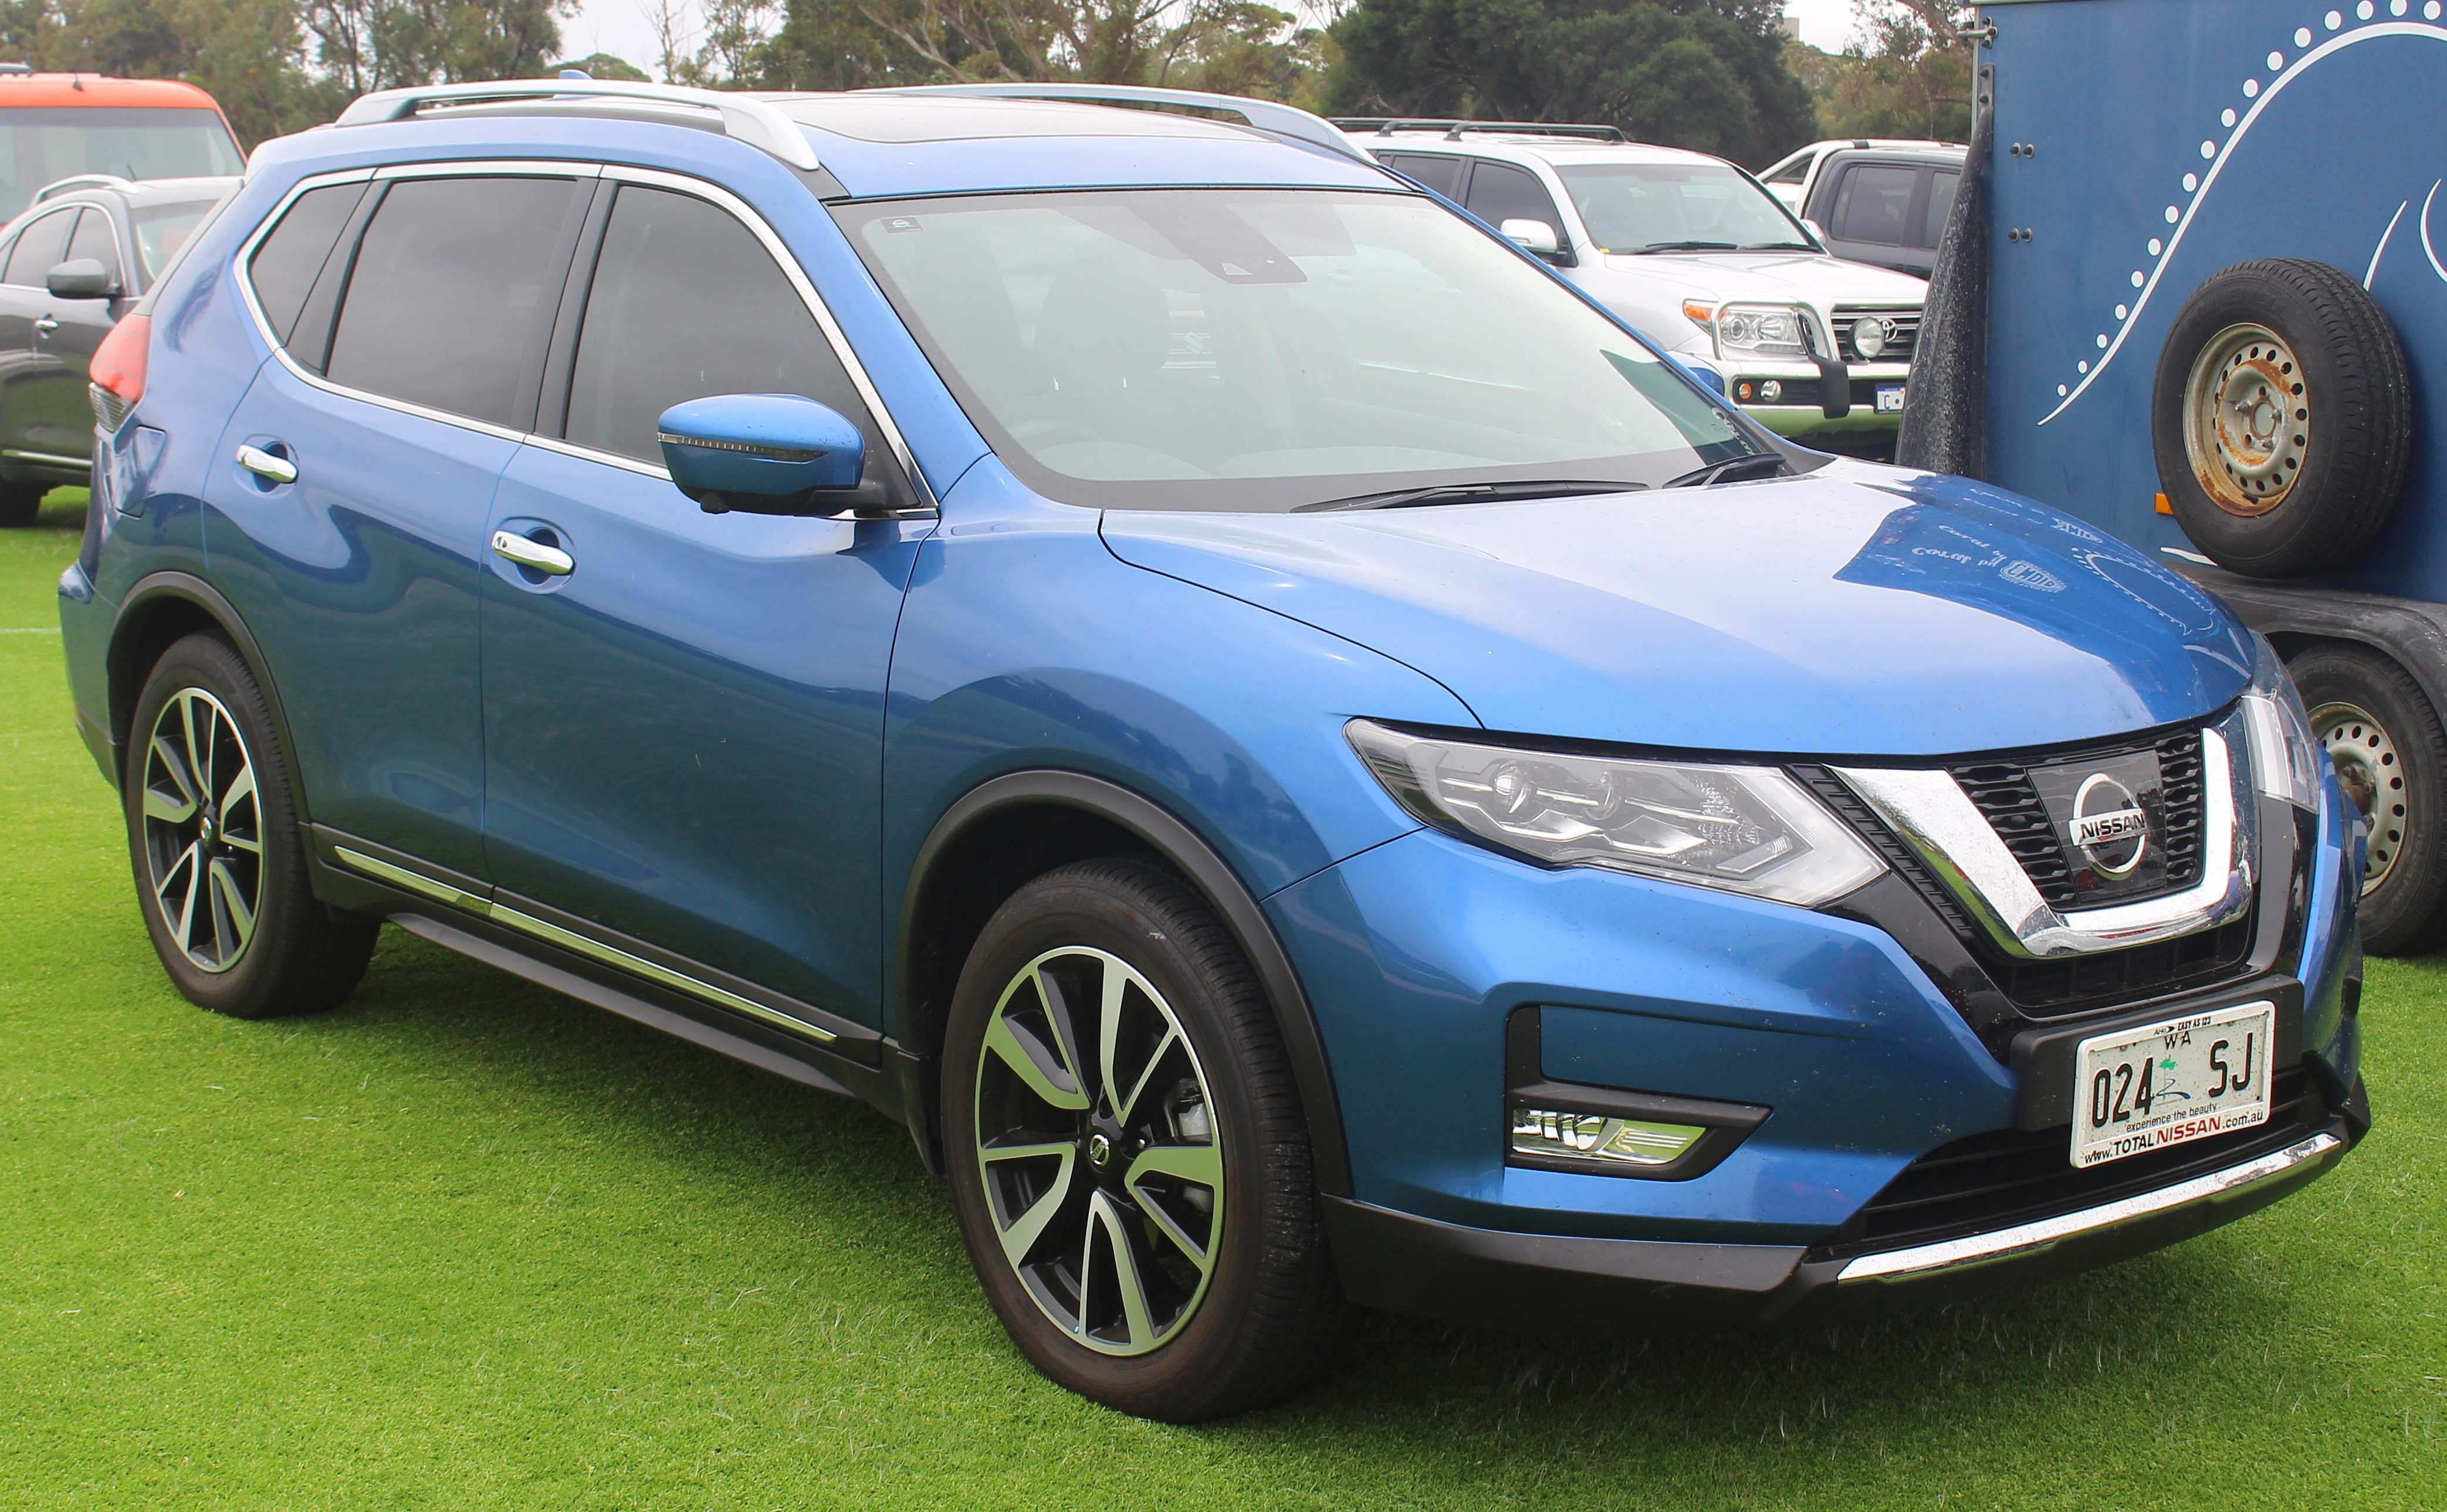 83 A Nissan X Trail 2020 Mexico Style